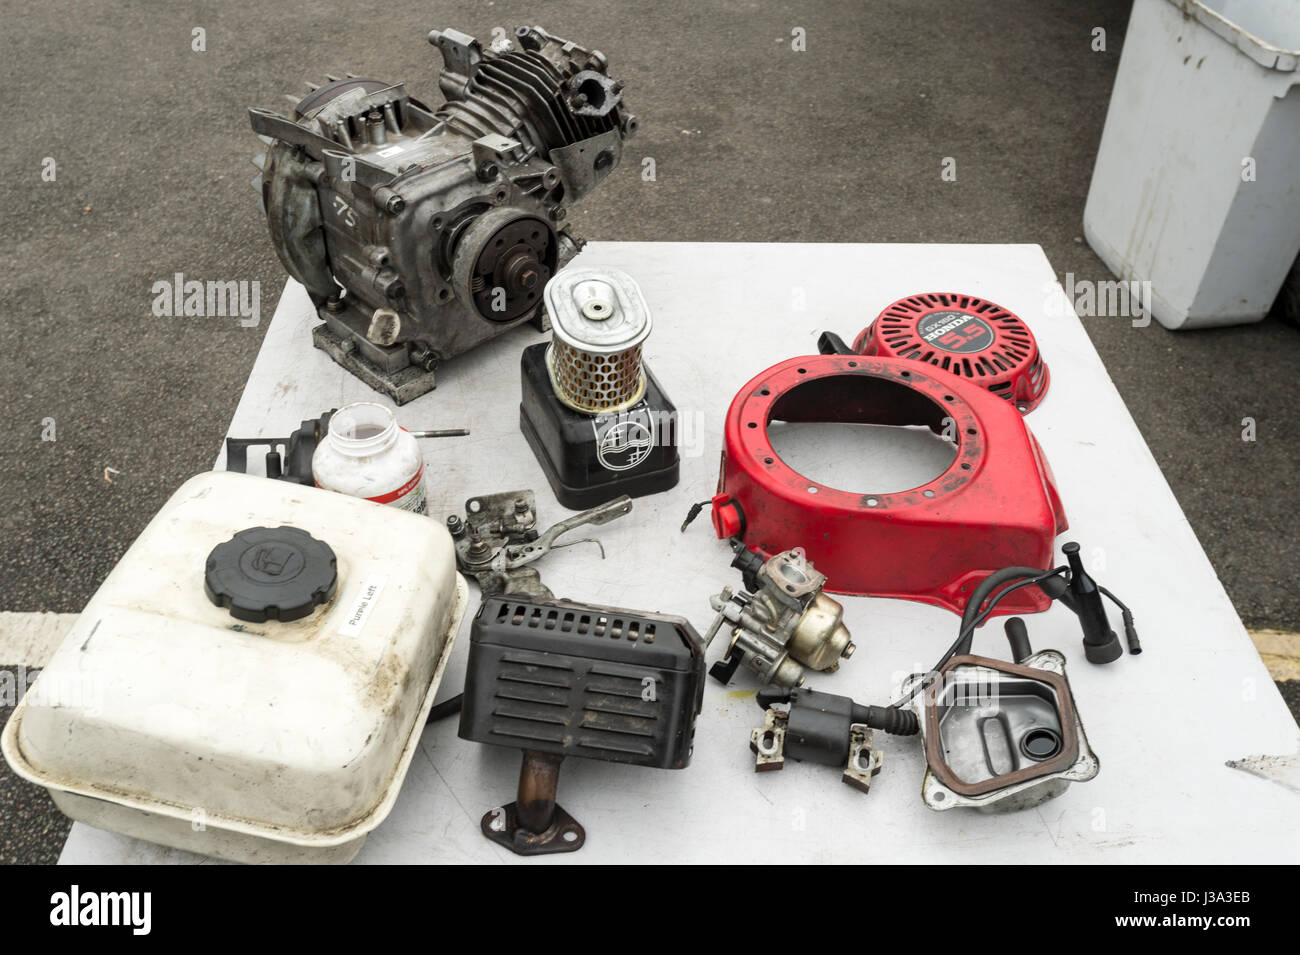 Go Kart Parts Stock Photos & Go Kart Parts Stock Images - Alamy